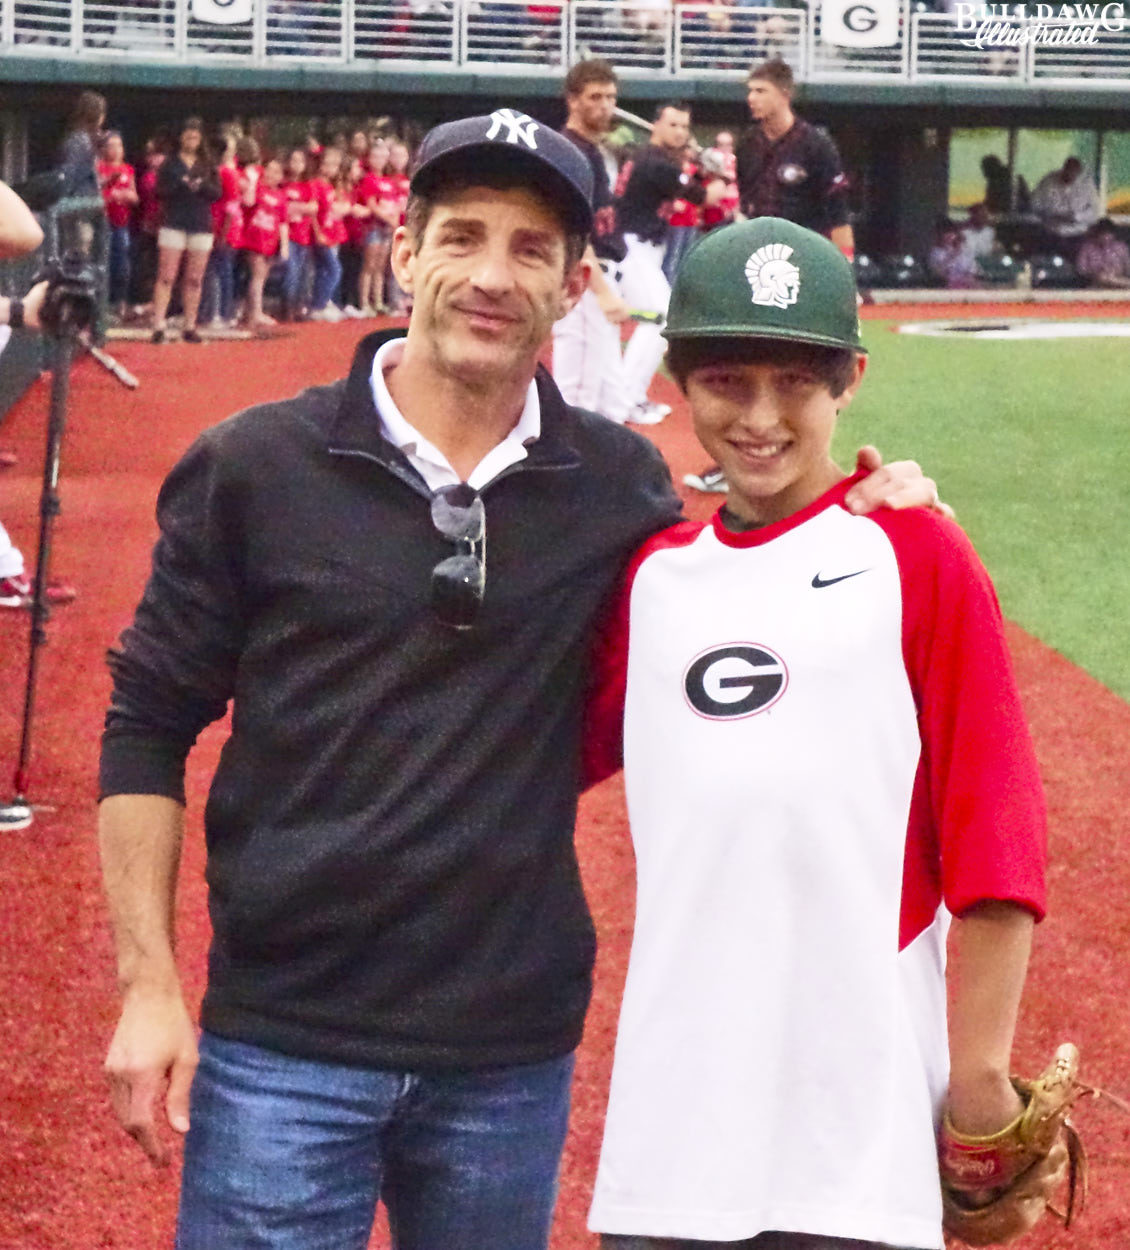 Throwing out the first pitch was a thrill